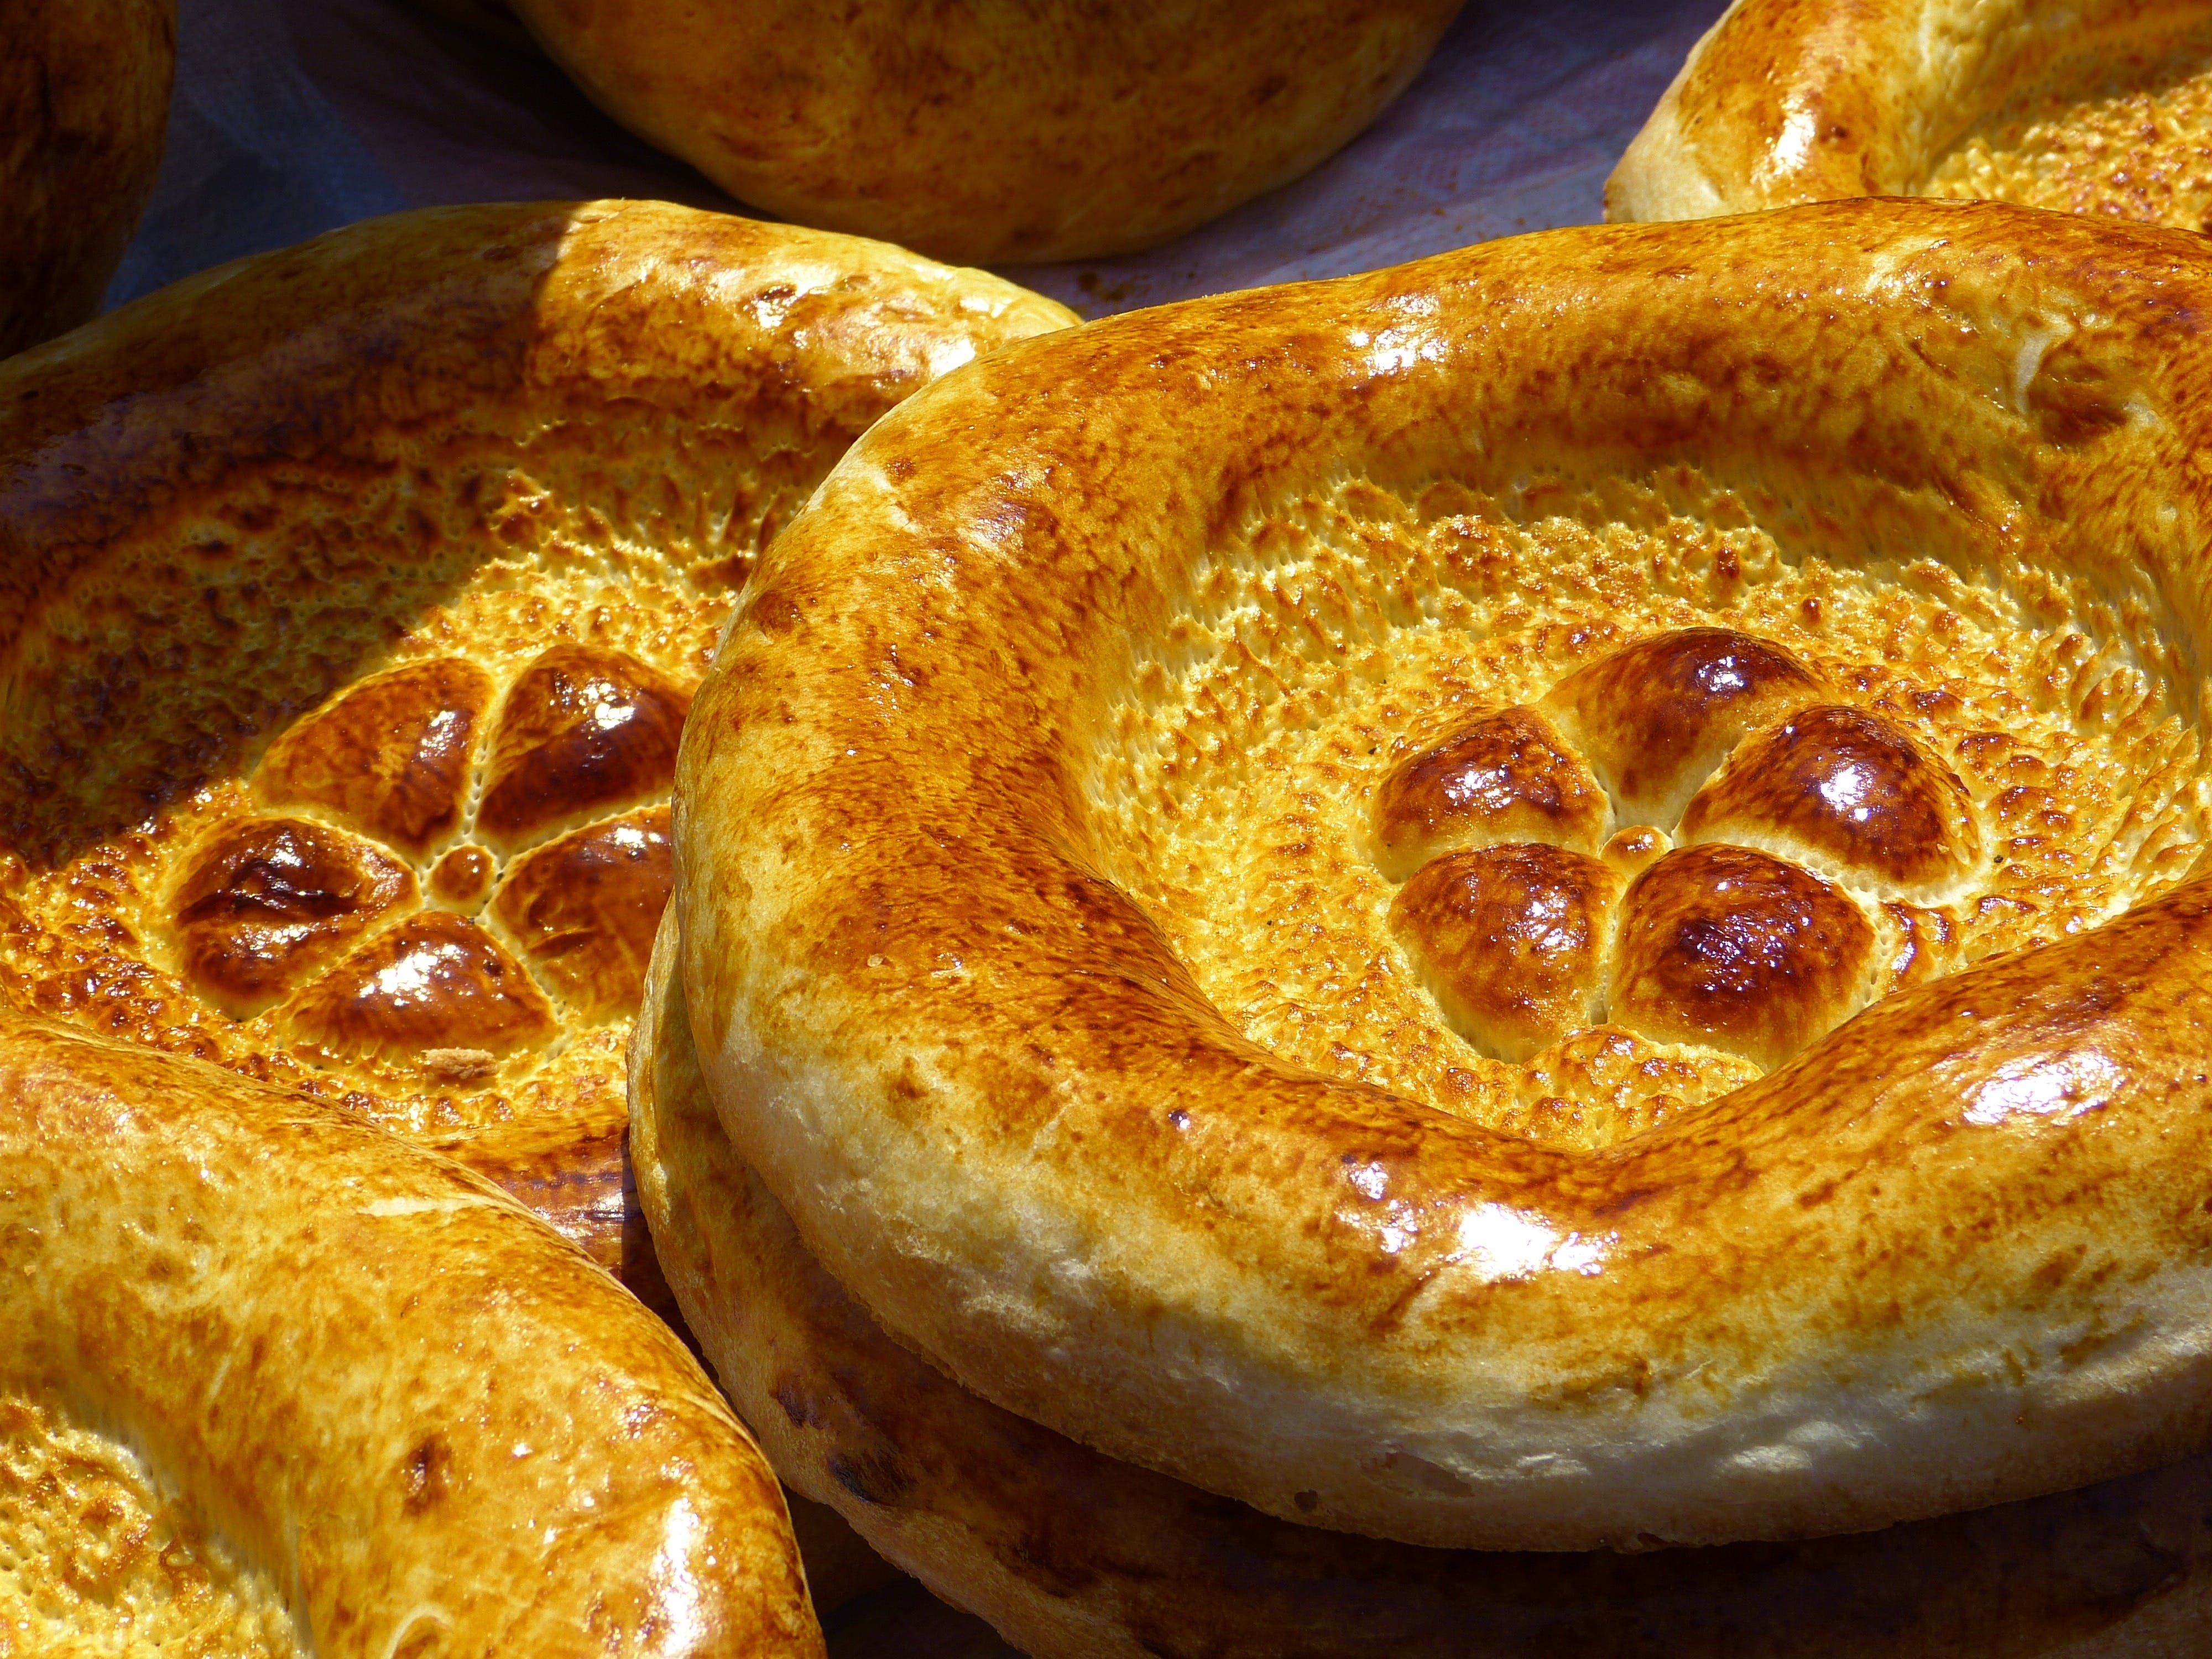 Brown Round Baked Bread